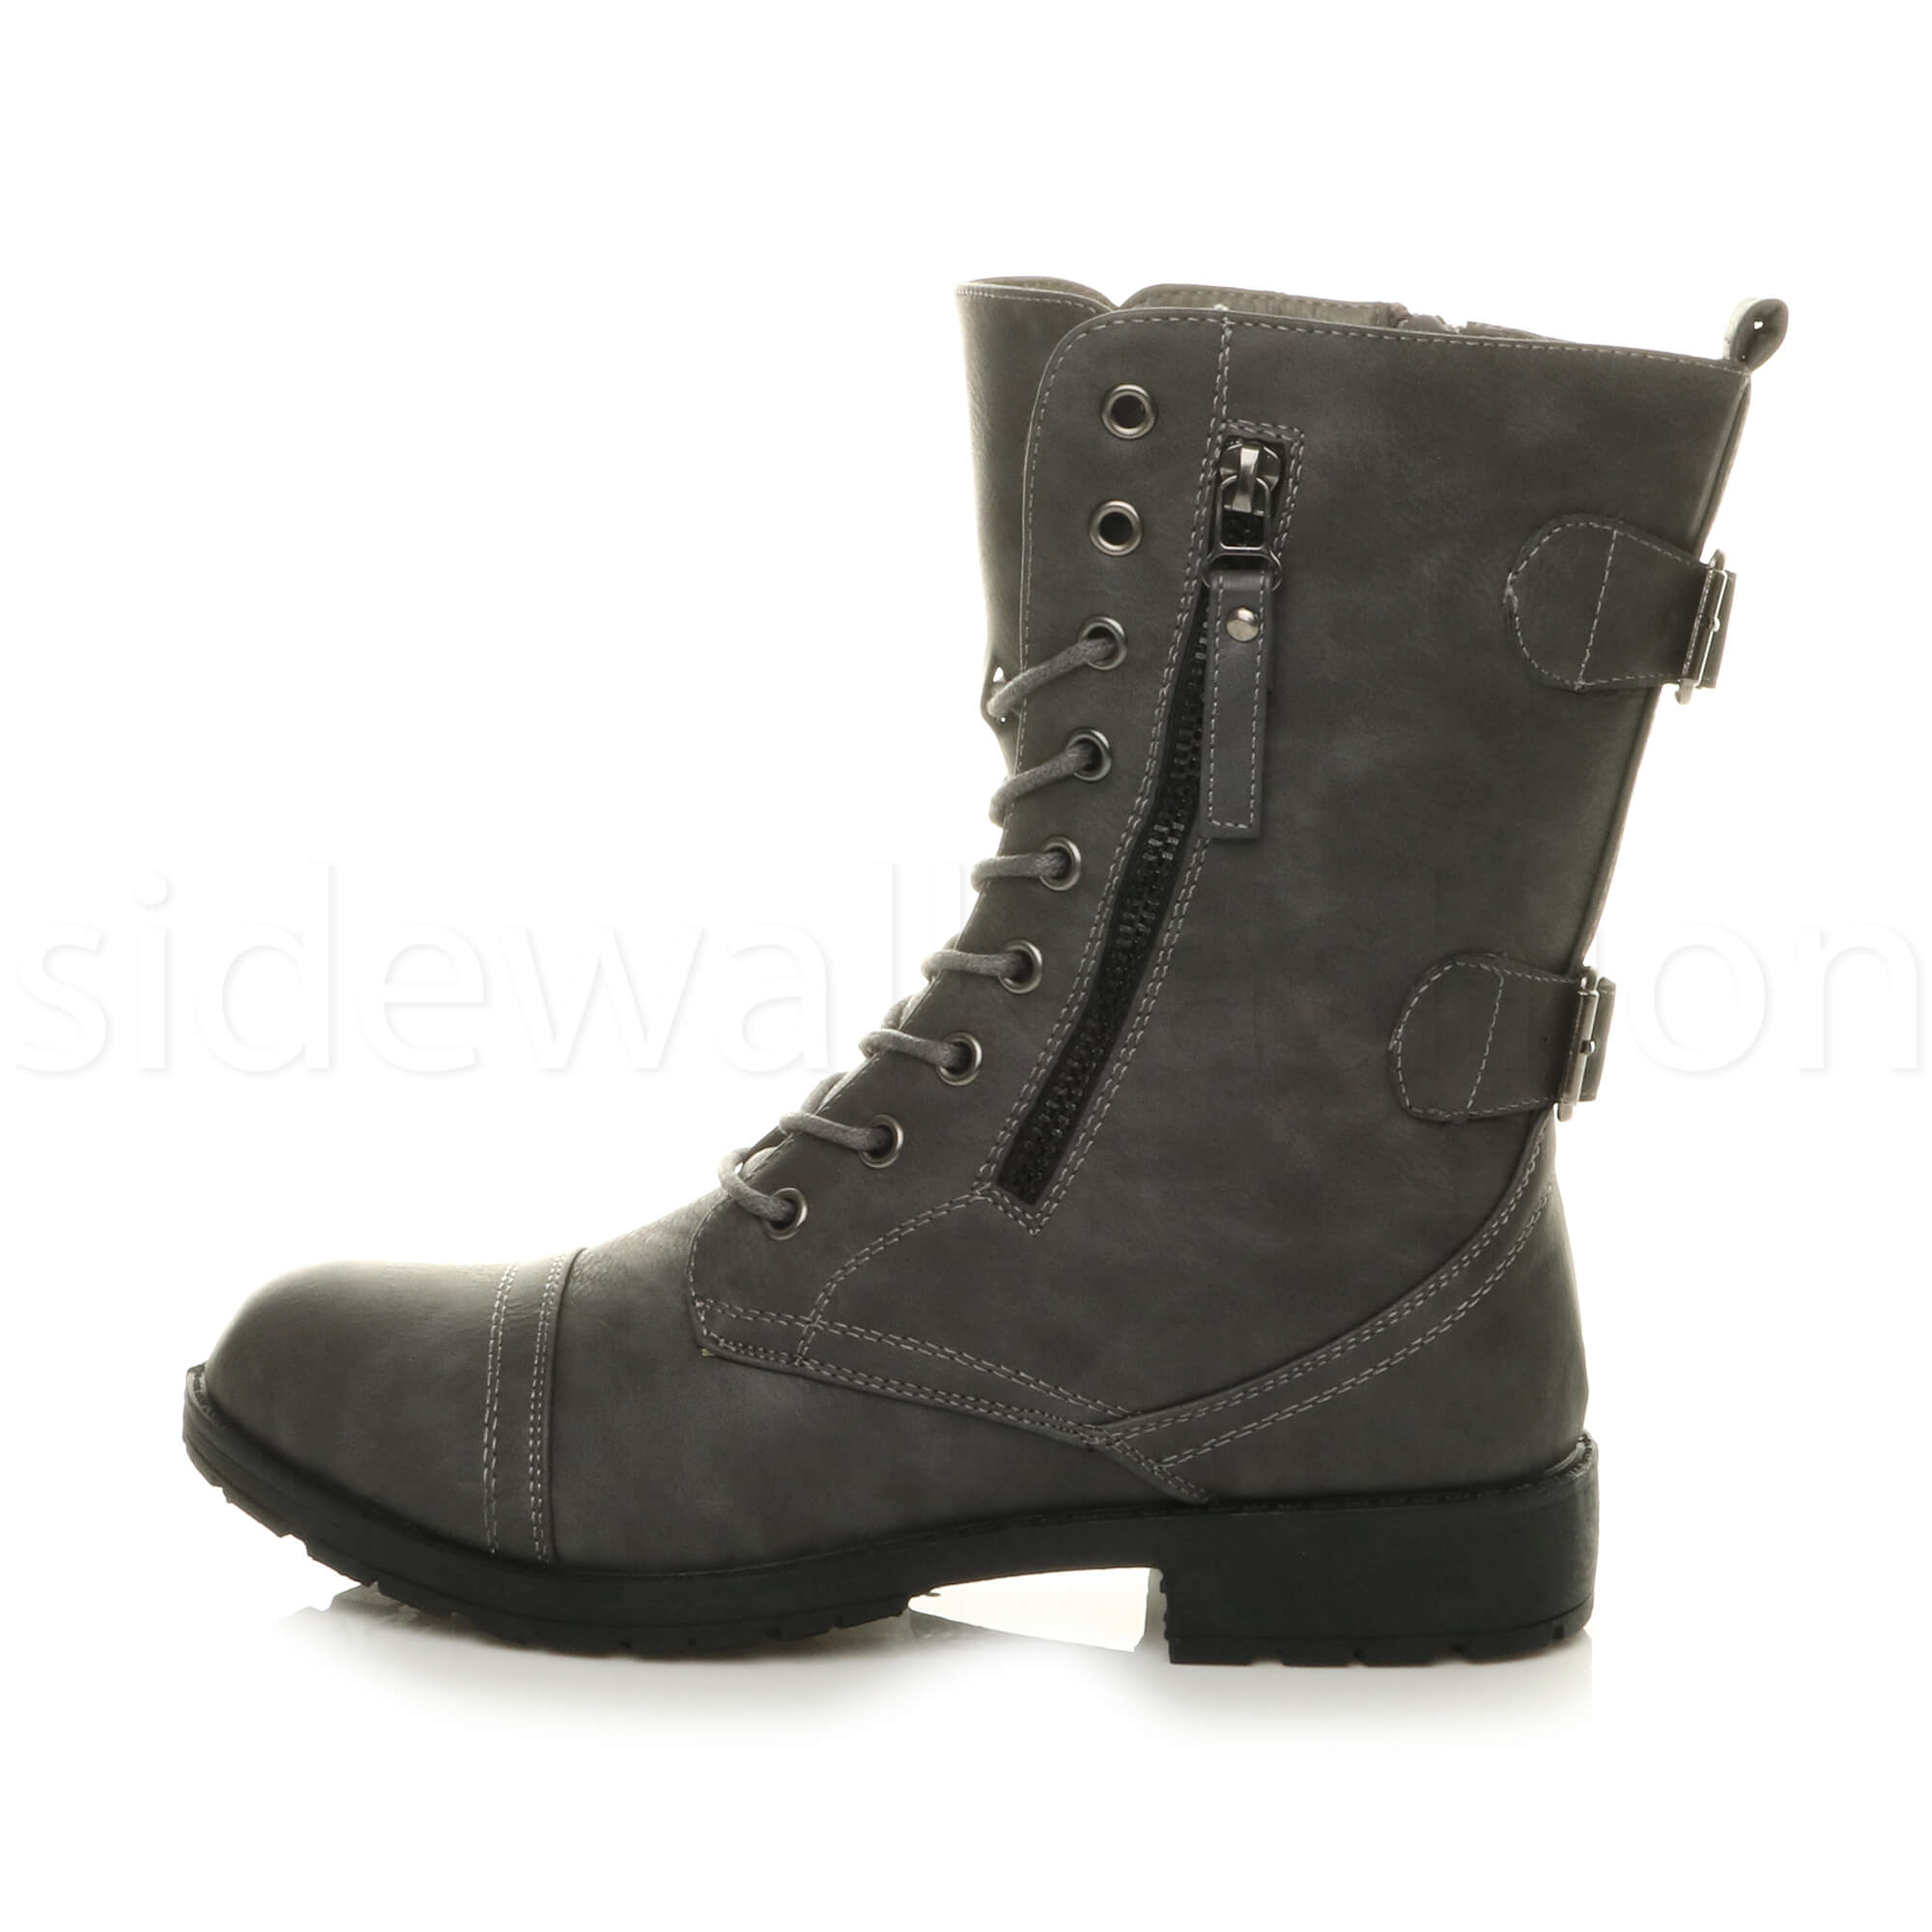 Womens-ladies-low-heel-flat-lace-up-zip-combat-biker-military-ankle-boots-size thumbnail 51